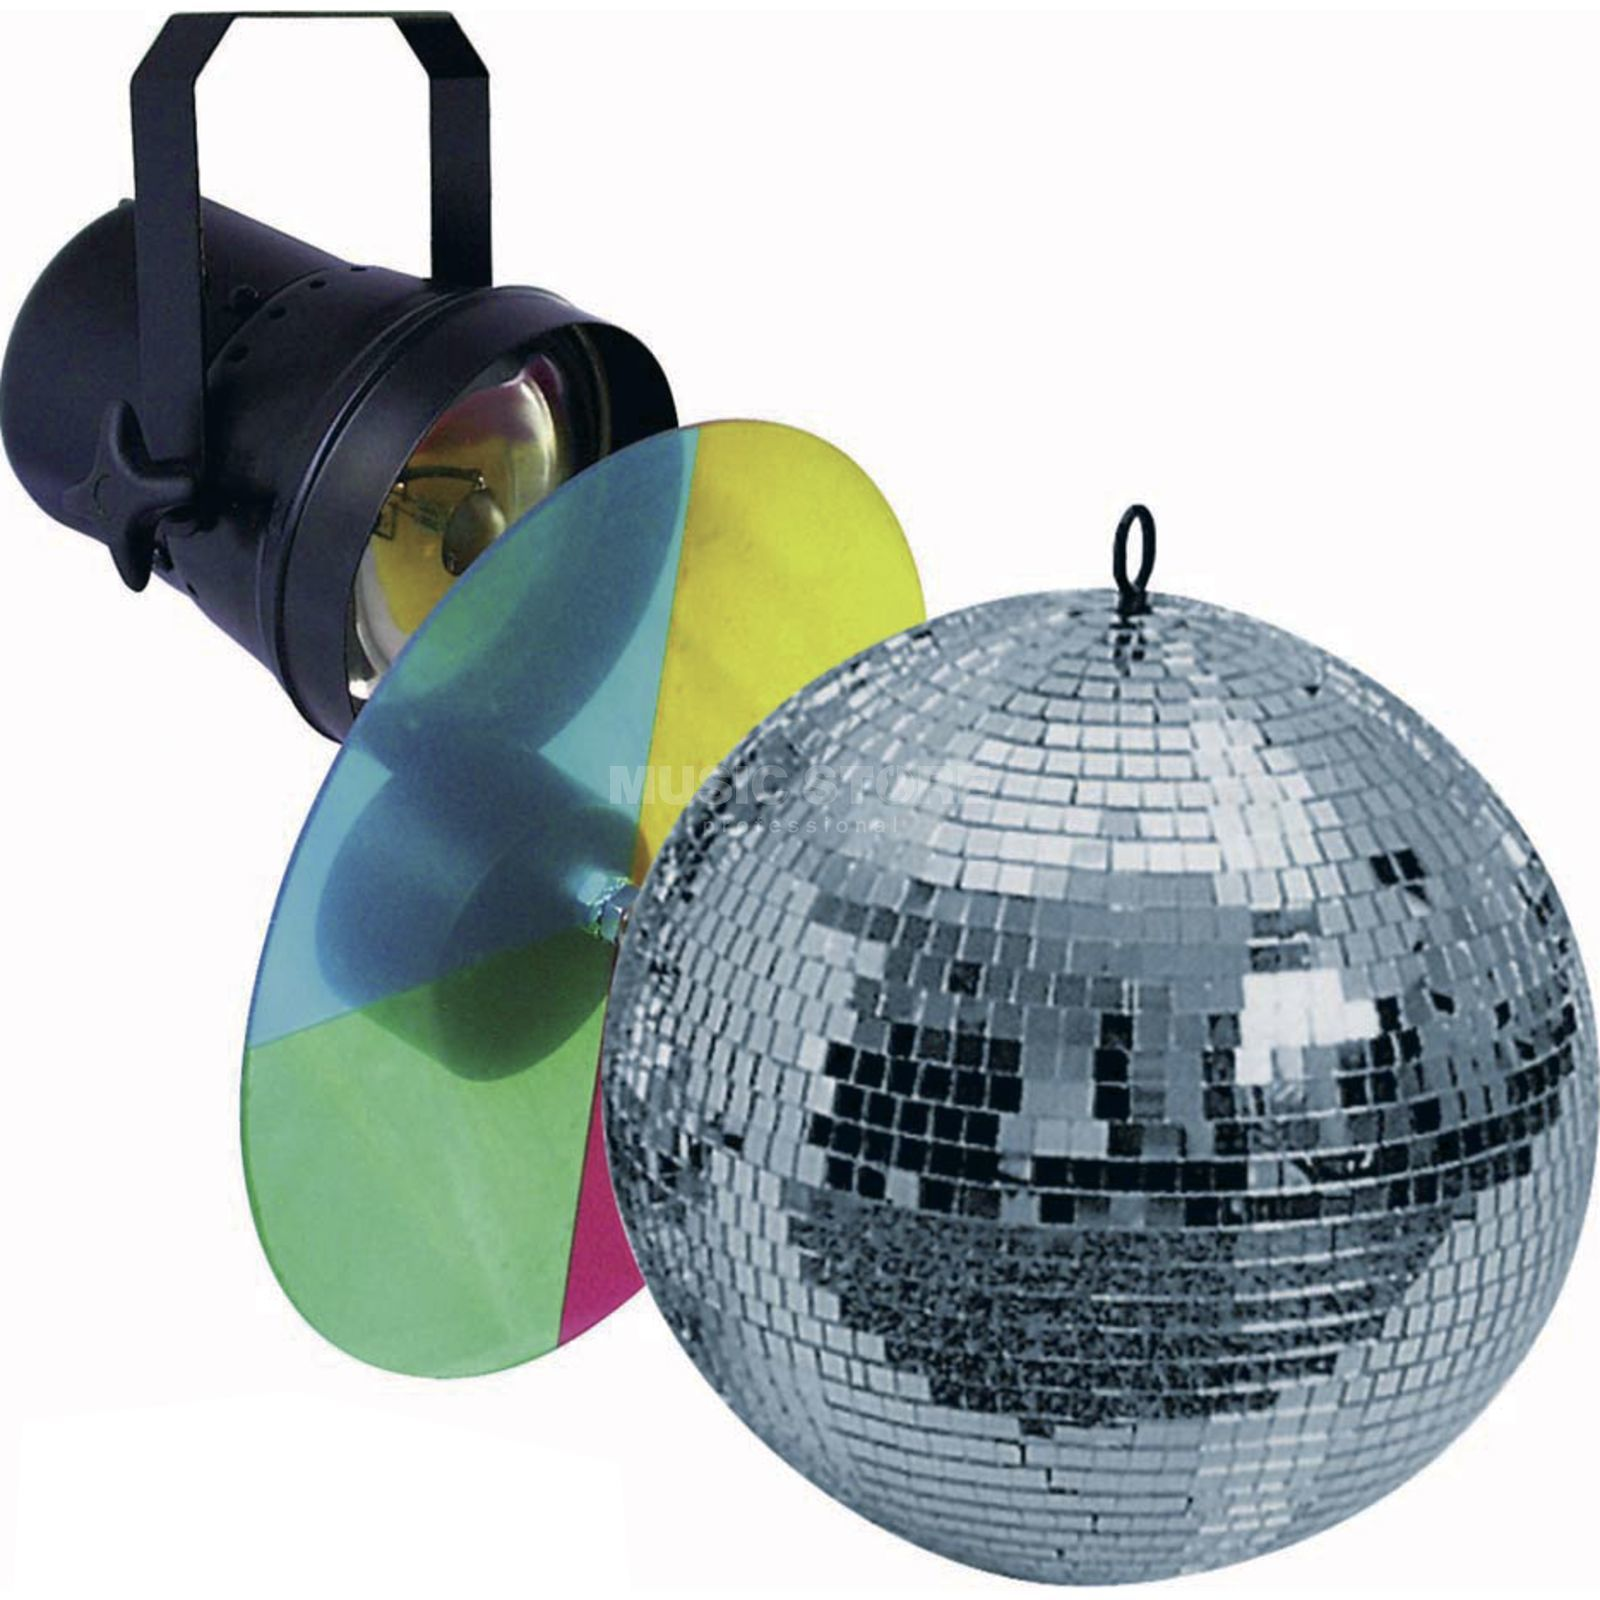 lightmaXX Mirror Ball Set 1 / 20cm Motor Pinspot, Colour Changers Product Image